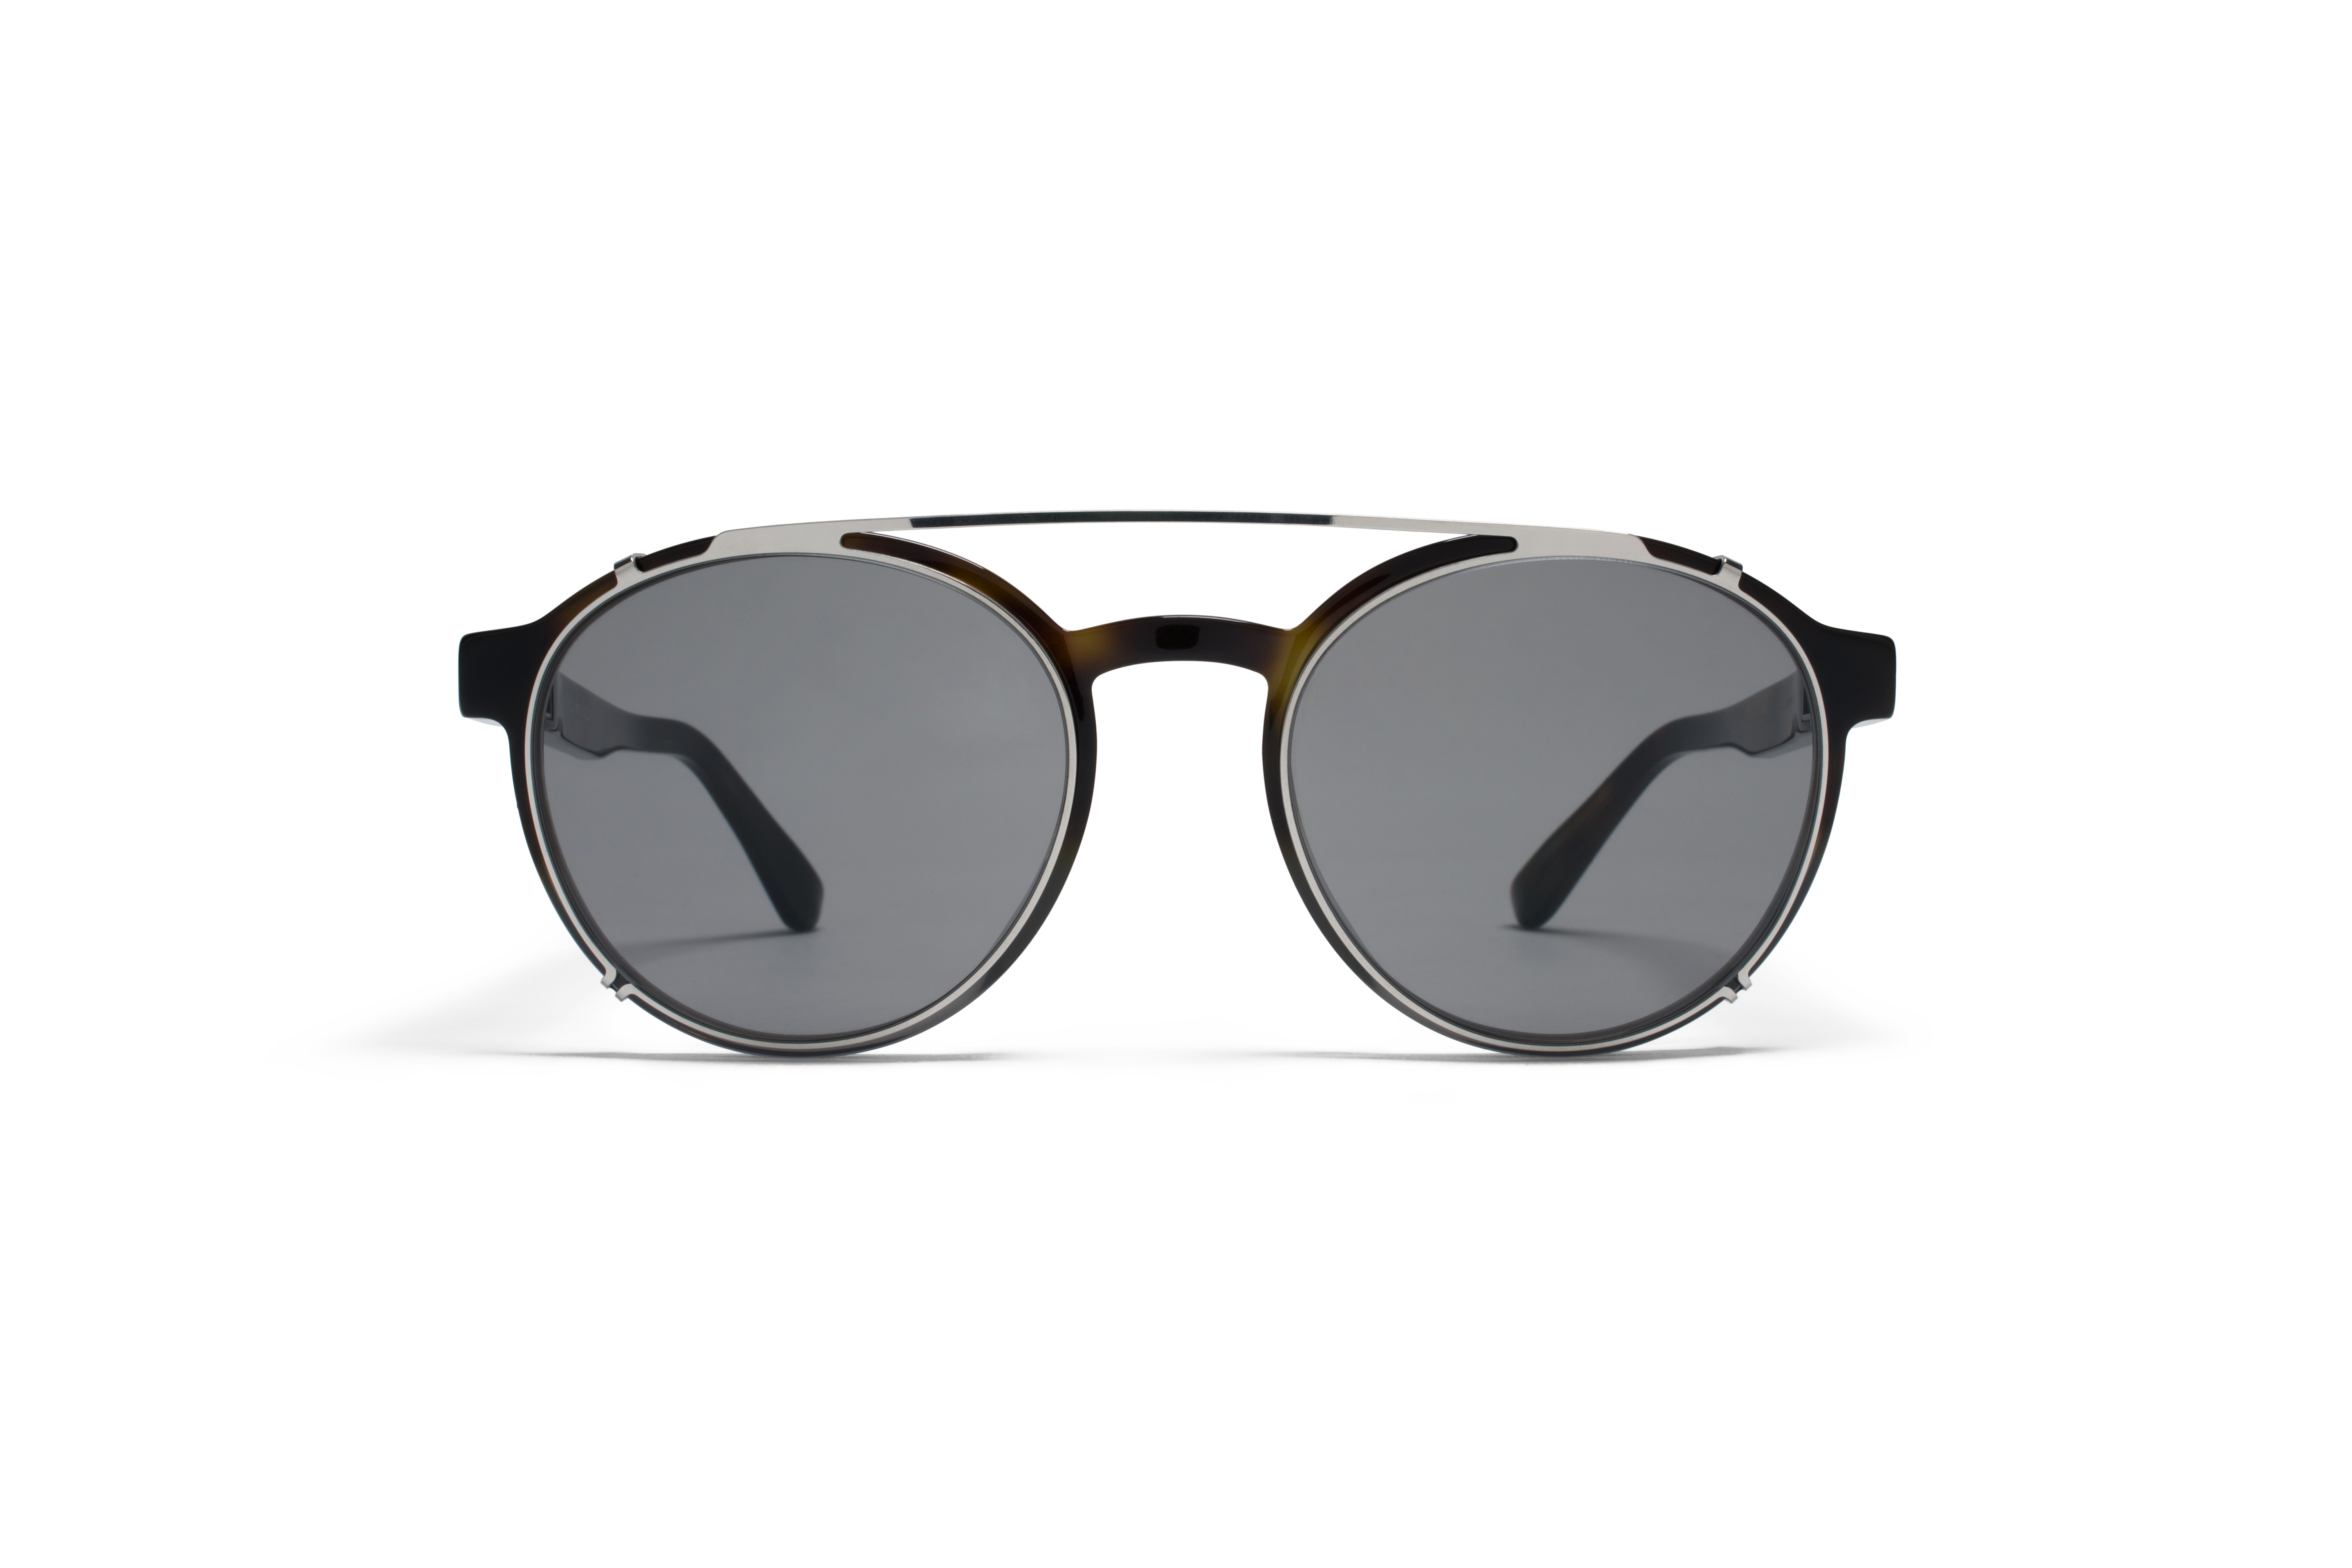 MYKITA No2 Sun Percy Santiago Gradient Grey Solid58121b6c63505